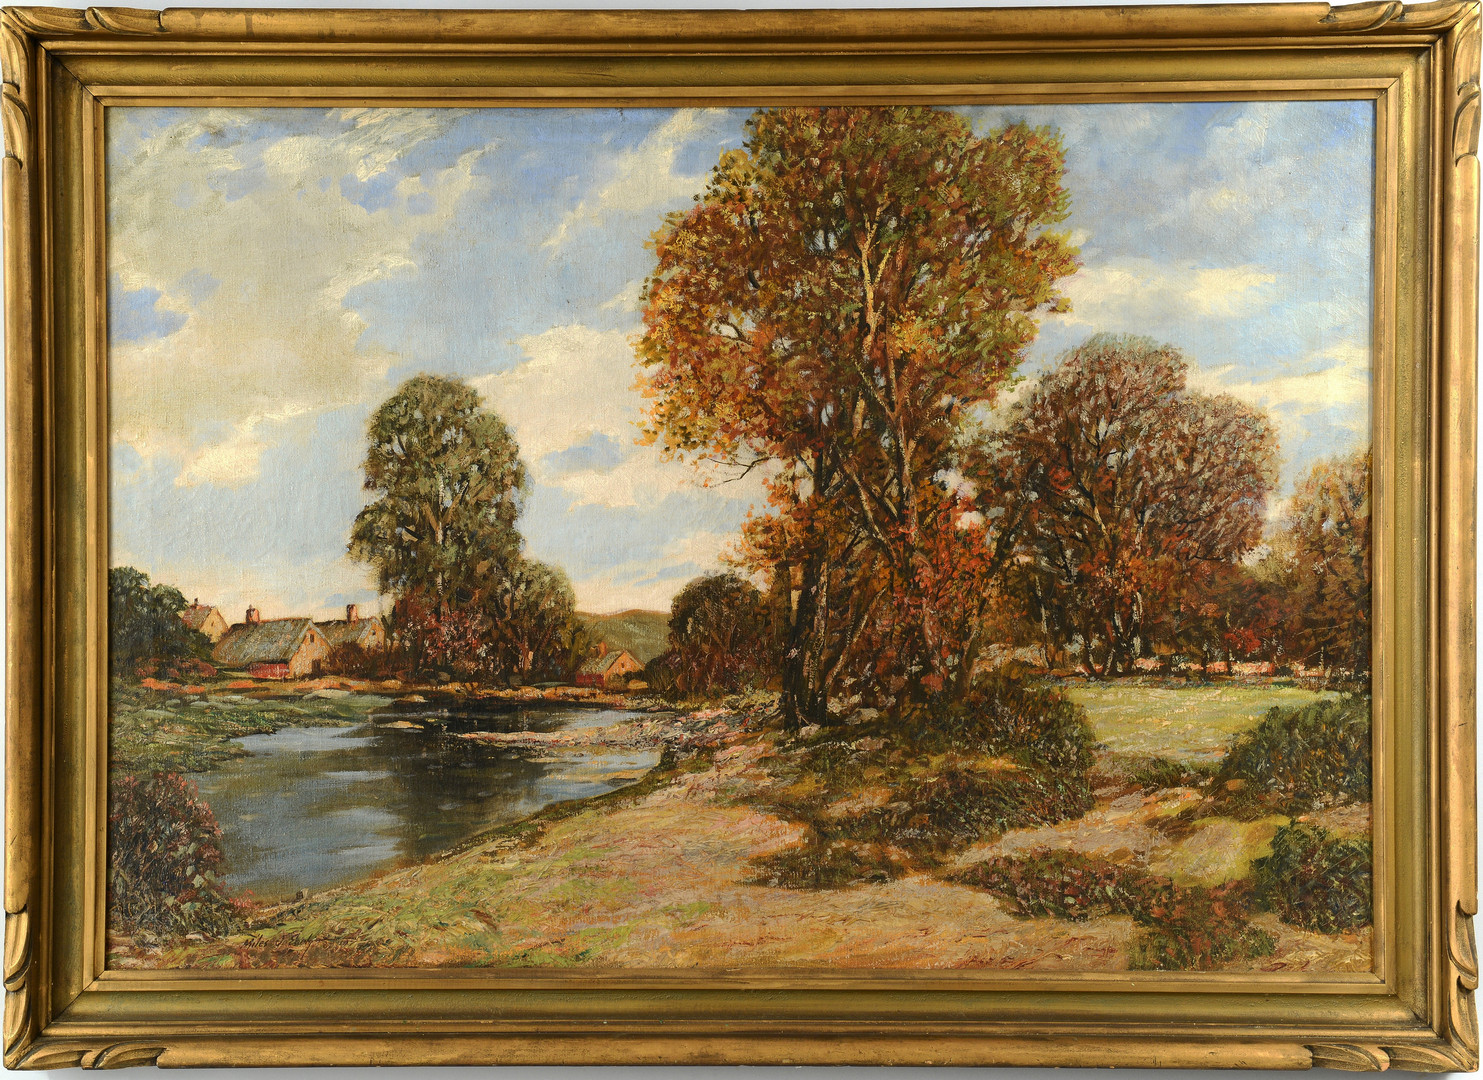 Lot 198: Miles Early Oil on Canvas Landscape